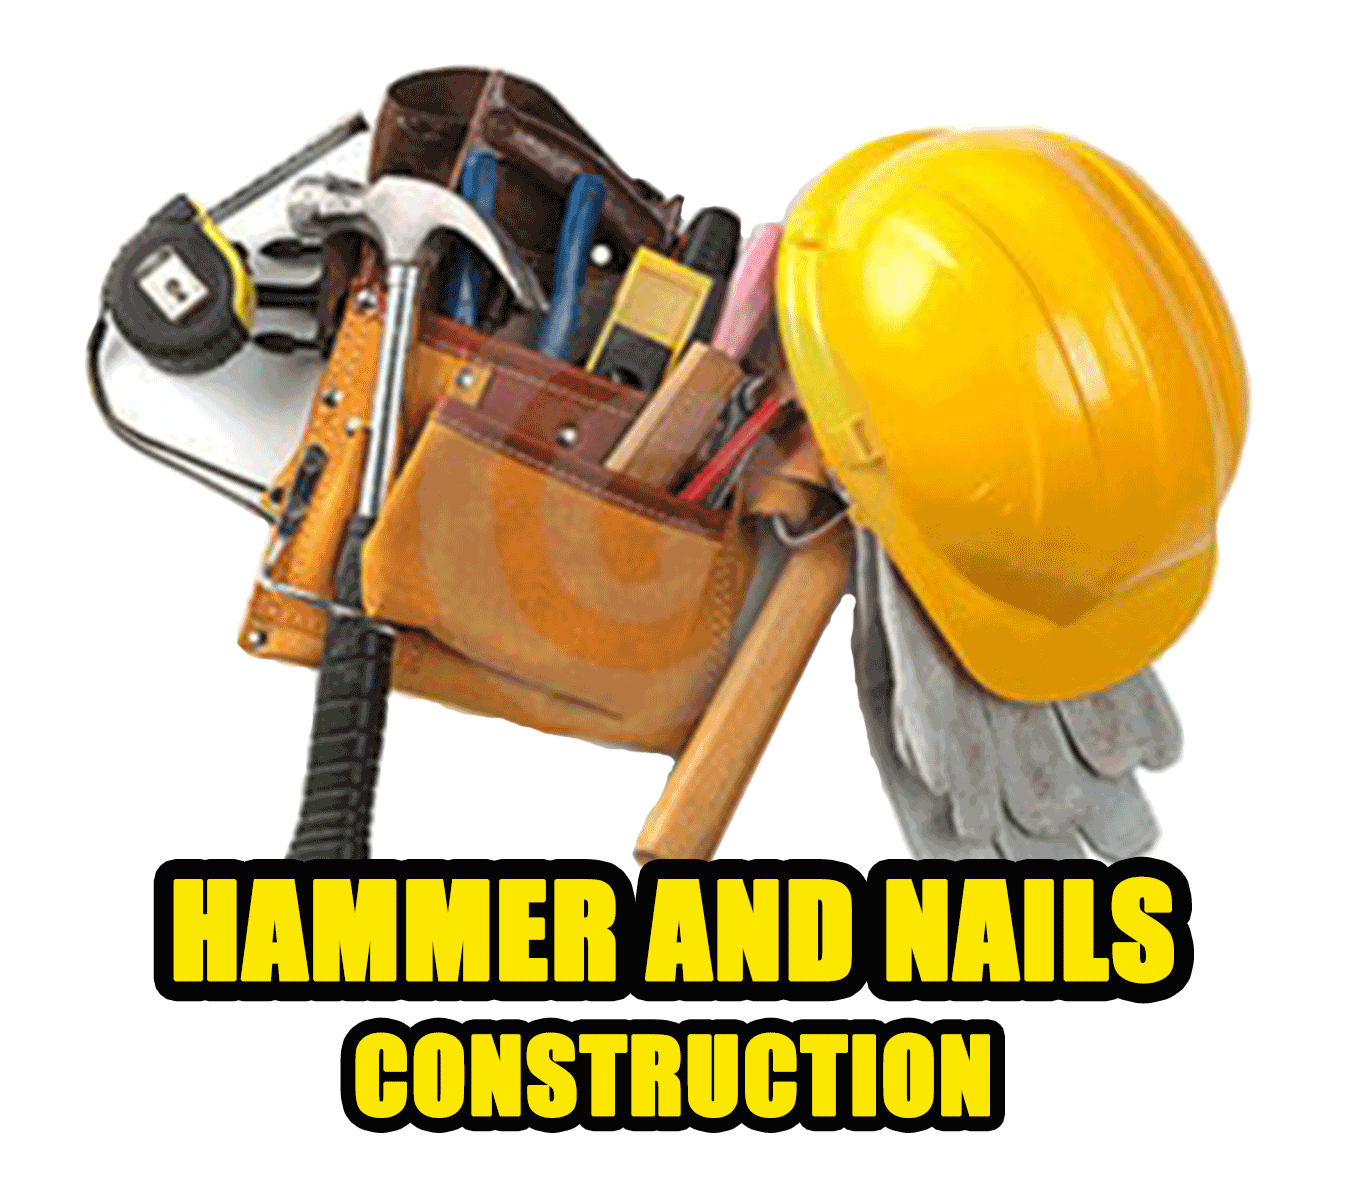 hammer-and-nails-3